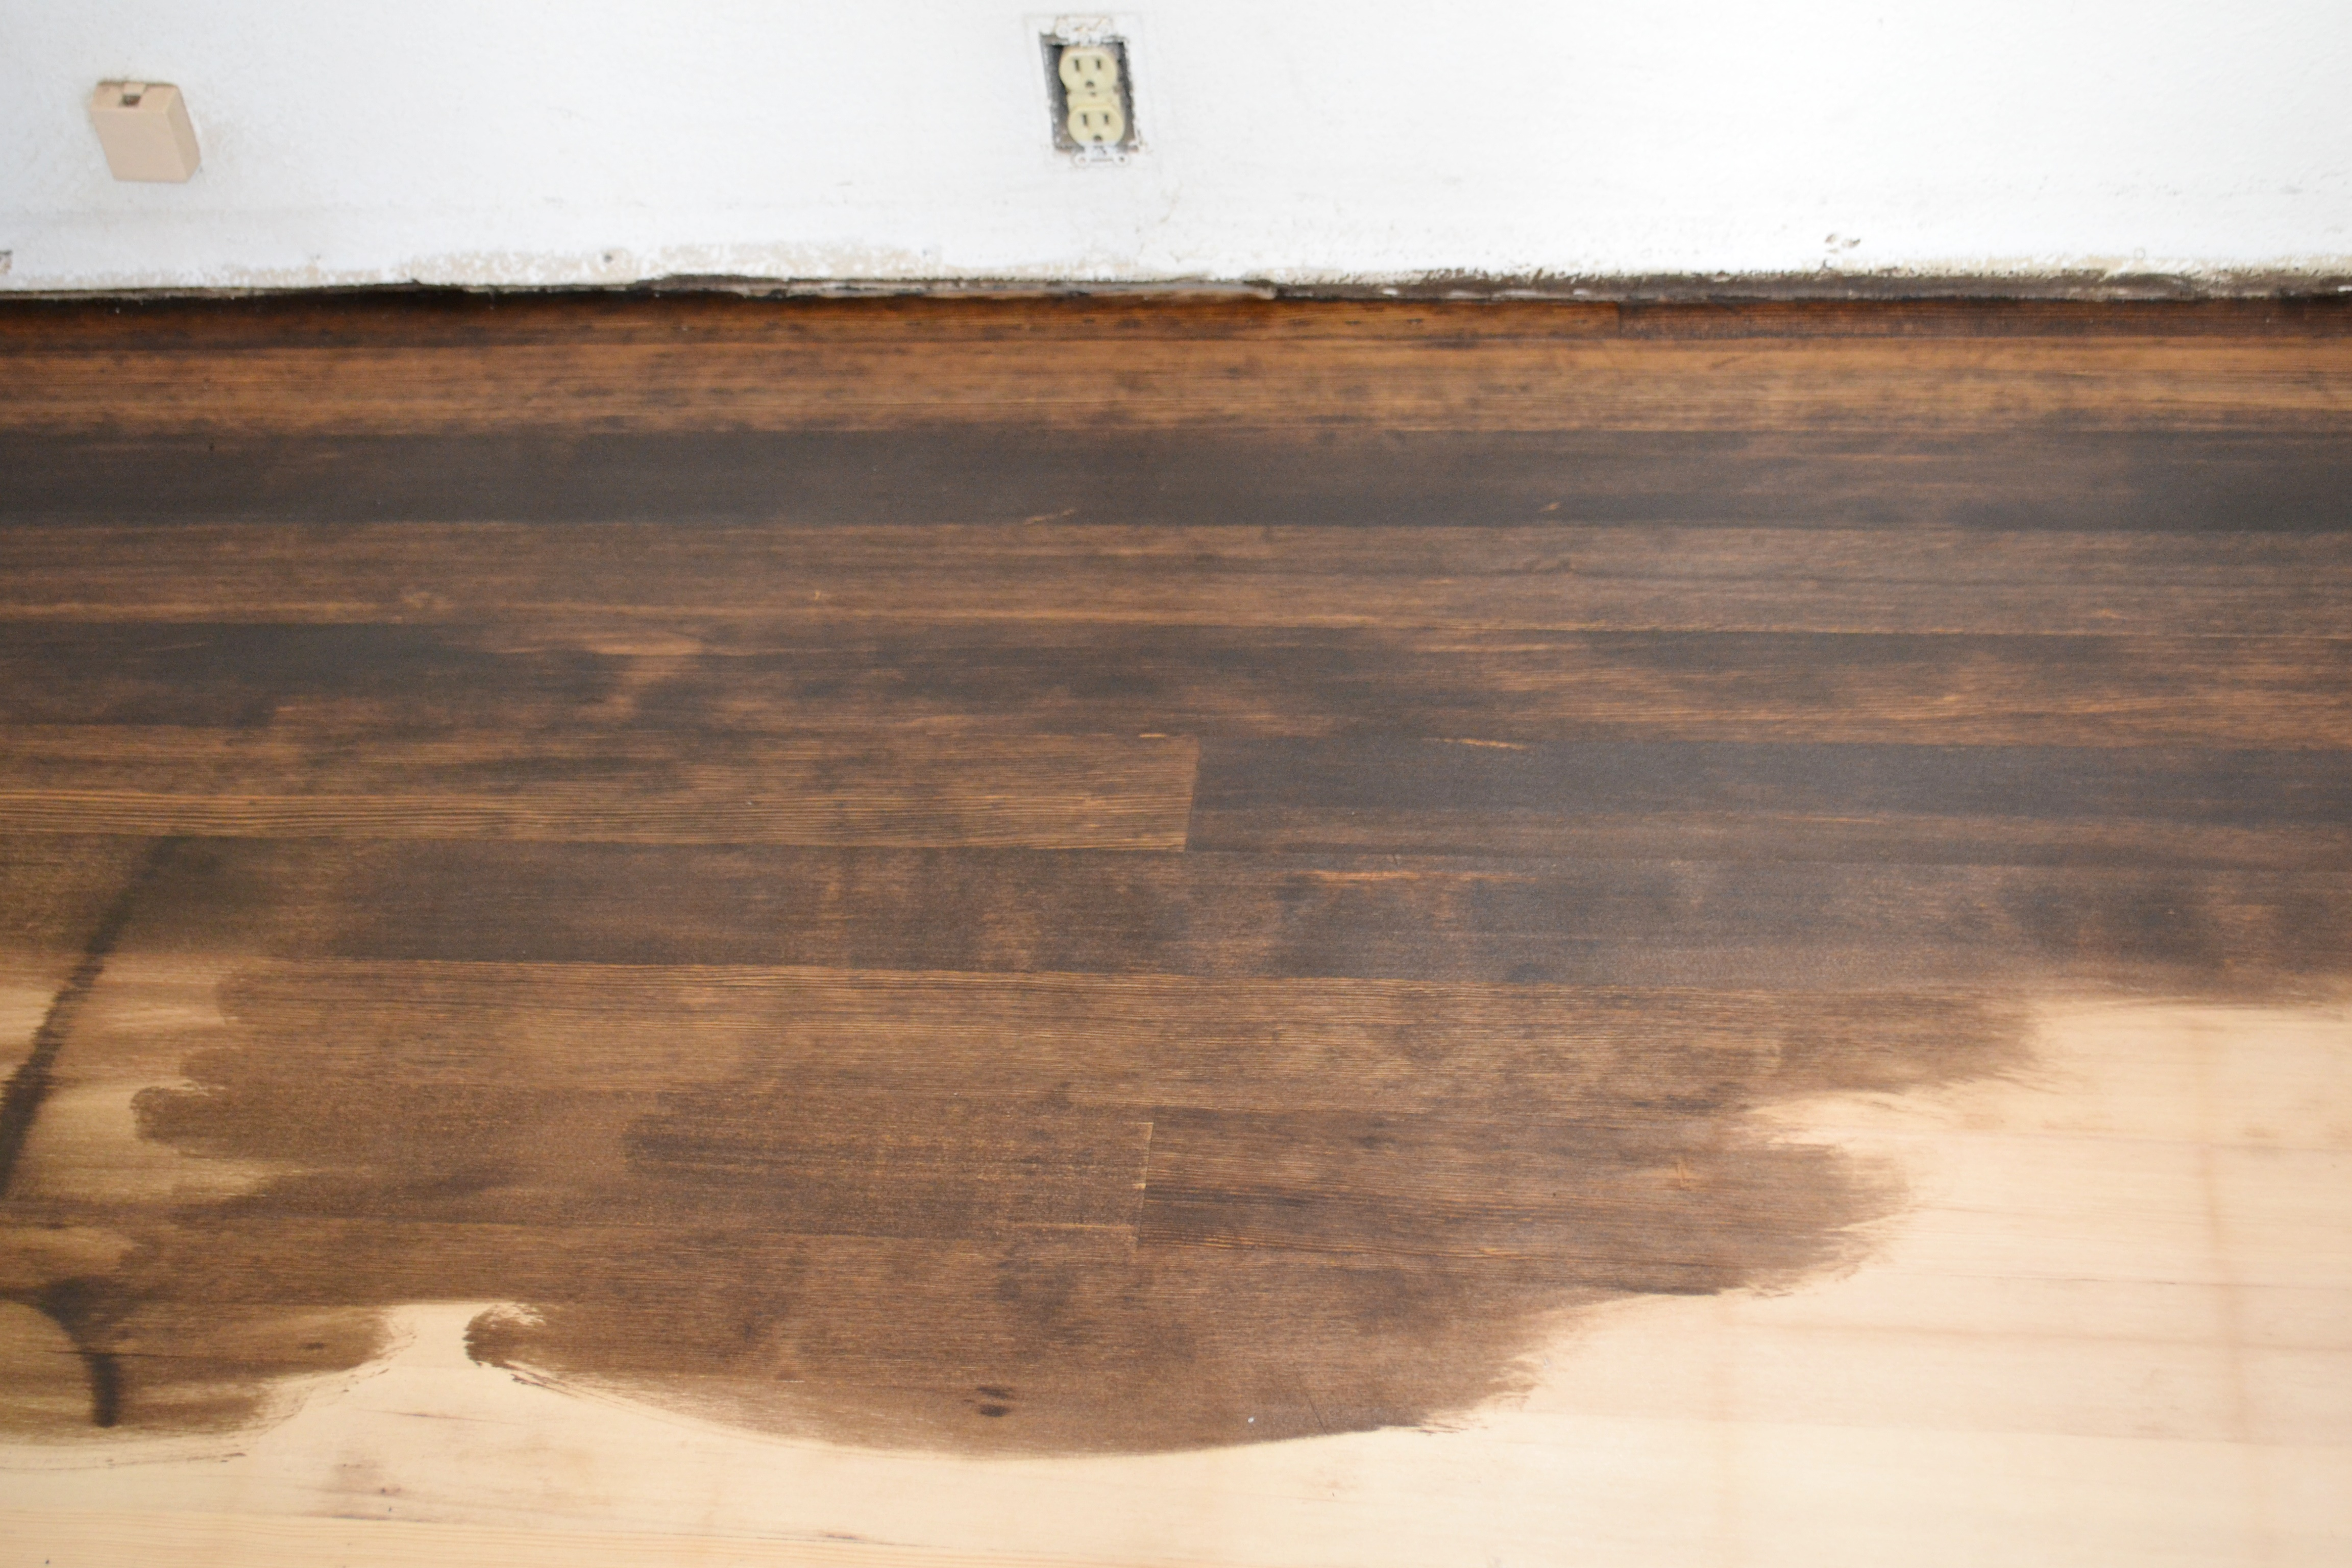 How To Re Sand Hardwood Floors Part - 44: Itu0027s Very Nerve Racking To Apply The Stain And Knowing That This Is  Permanent (well Unless We Wanted To Re-sand)